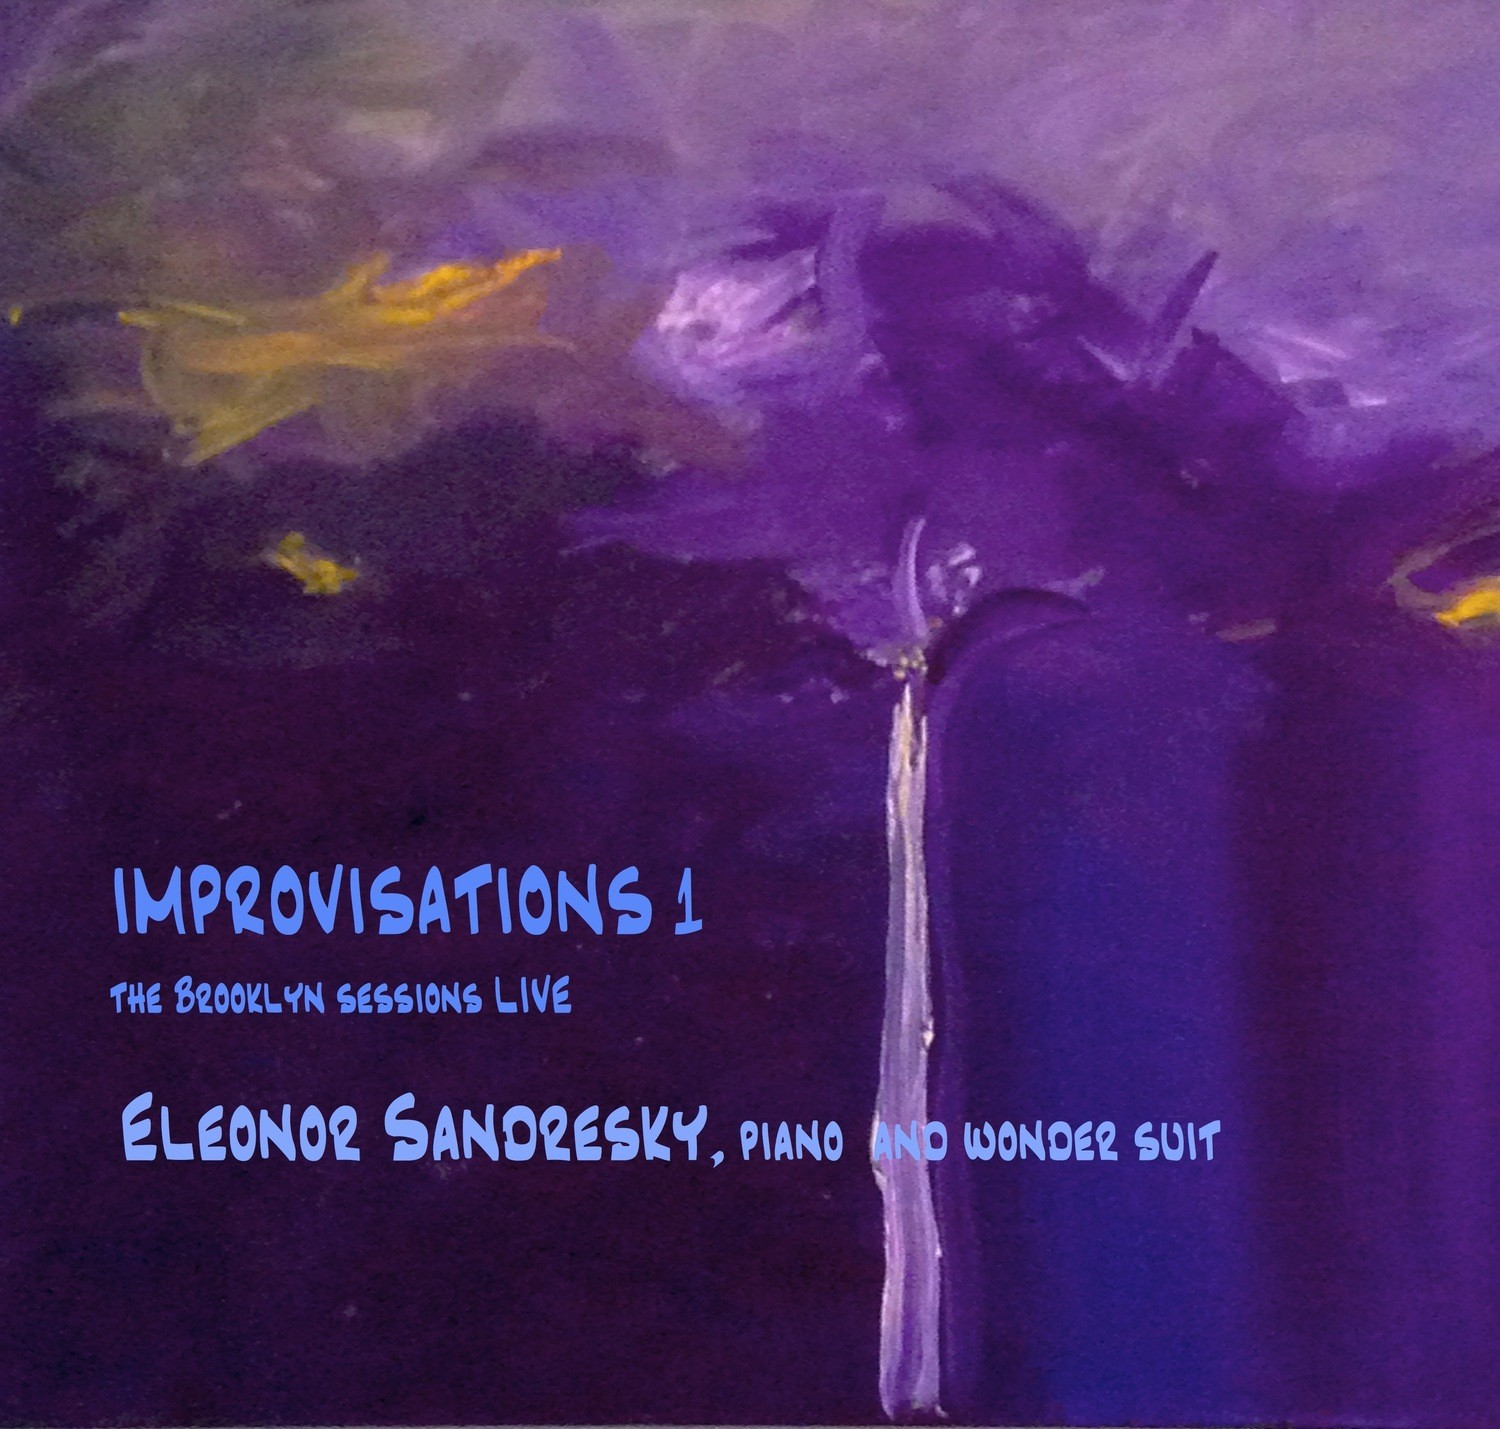 Improvisations 1